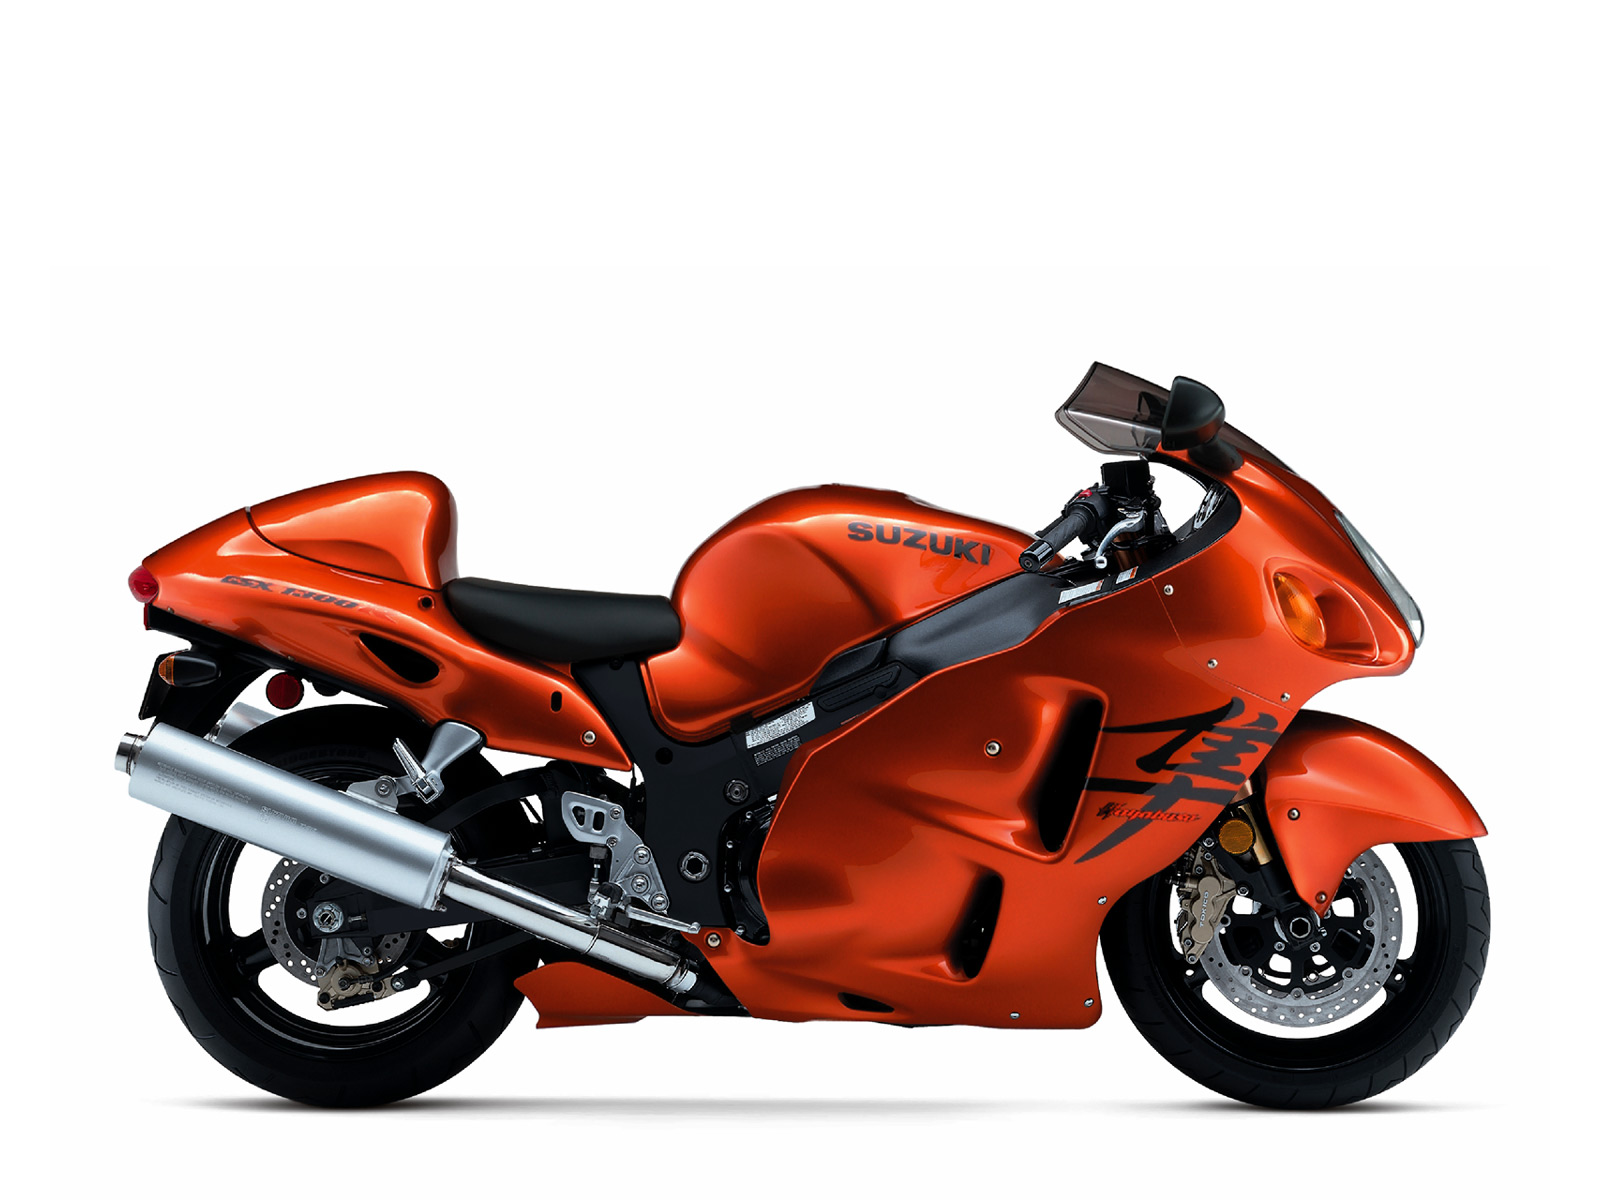 New Suzuki Hayabusa 2019 >> Suzuki Hayabusa 2019 Price in Pakistan, Overview and Pictures | PakWheels